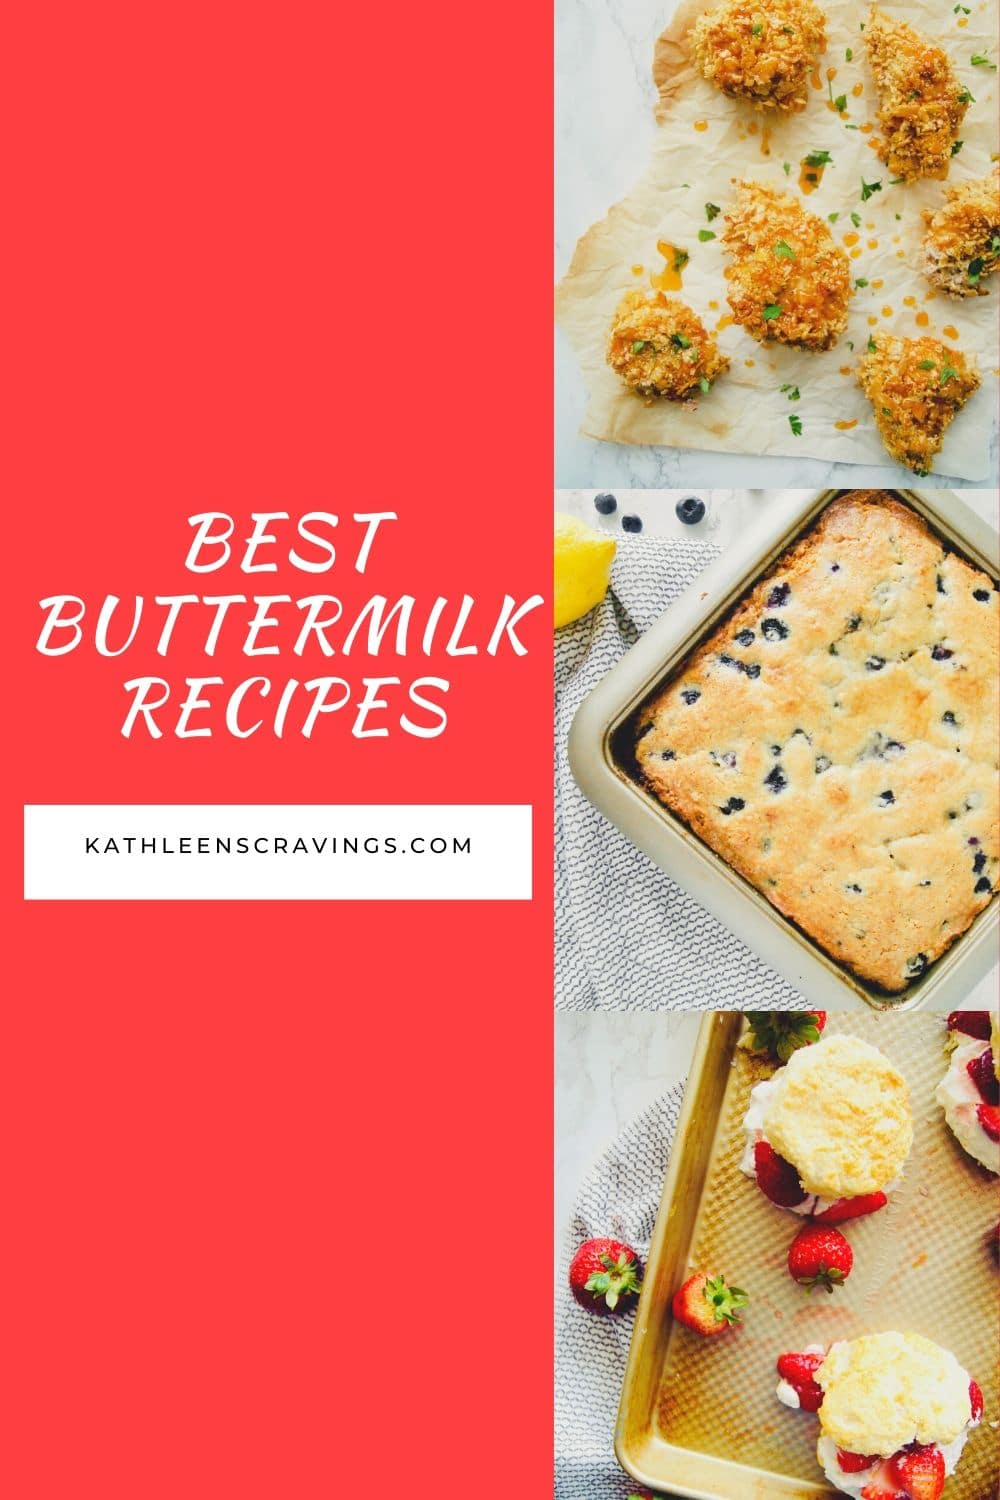 Best Buttermilk Recipes